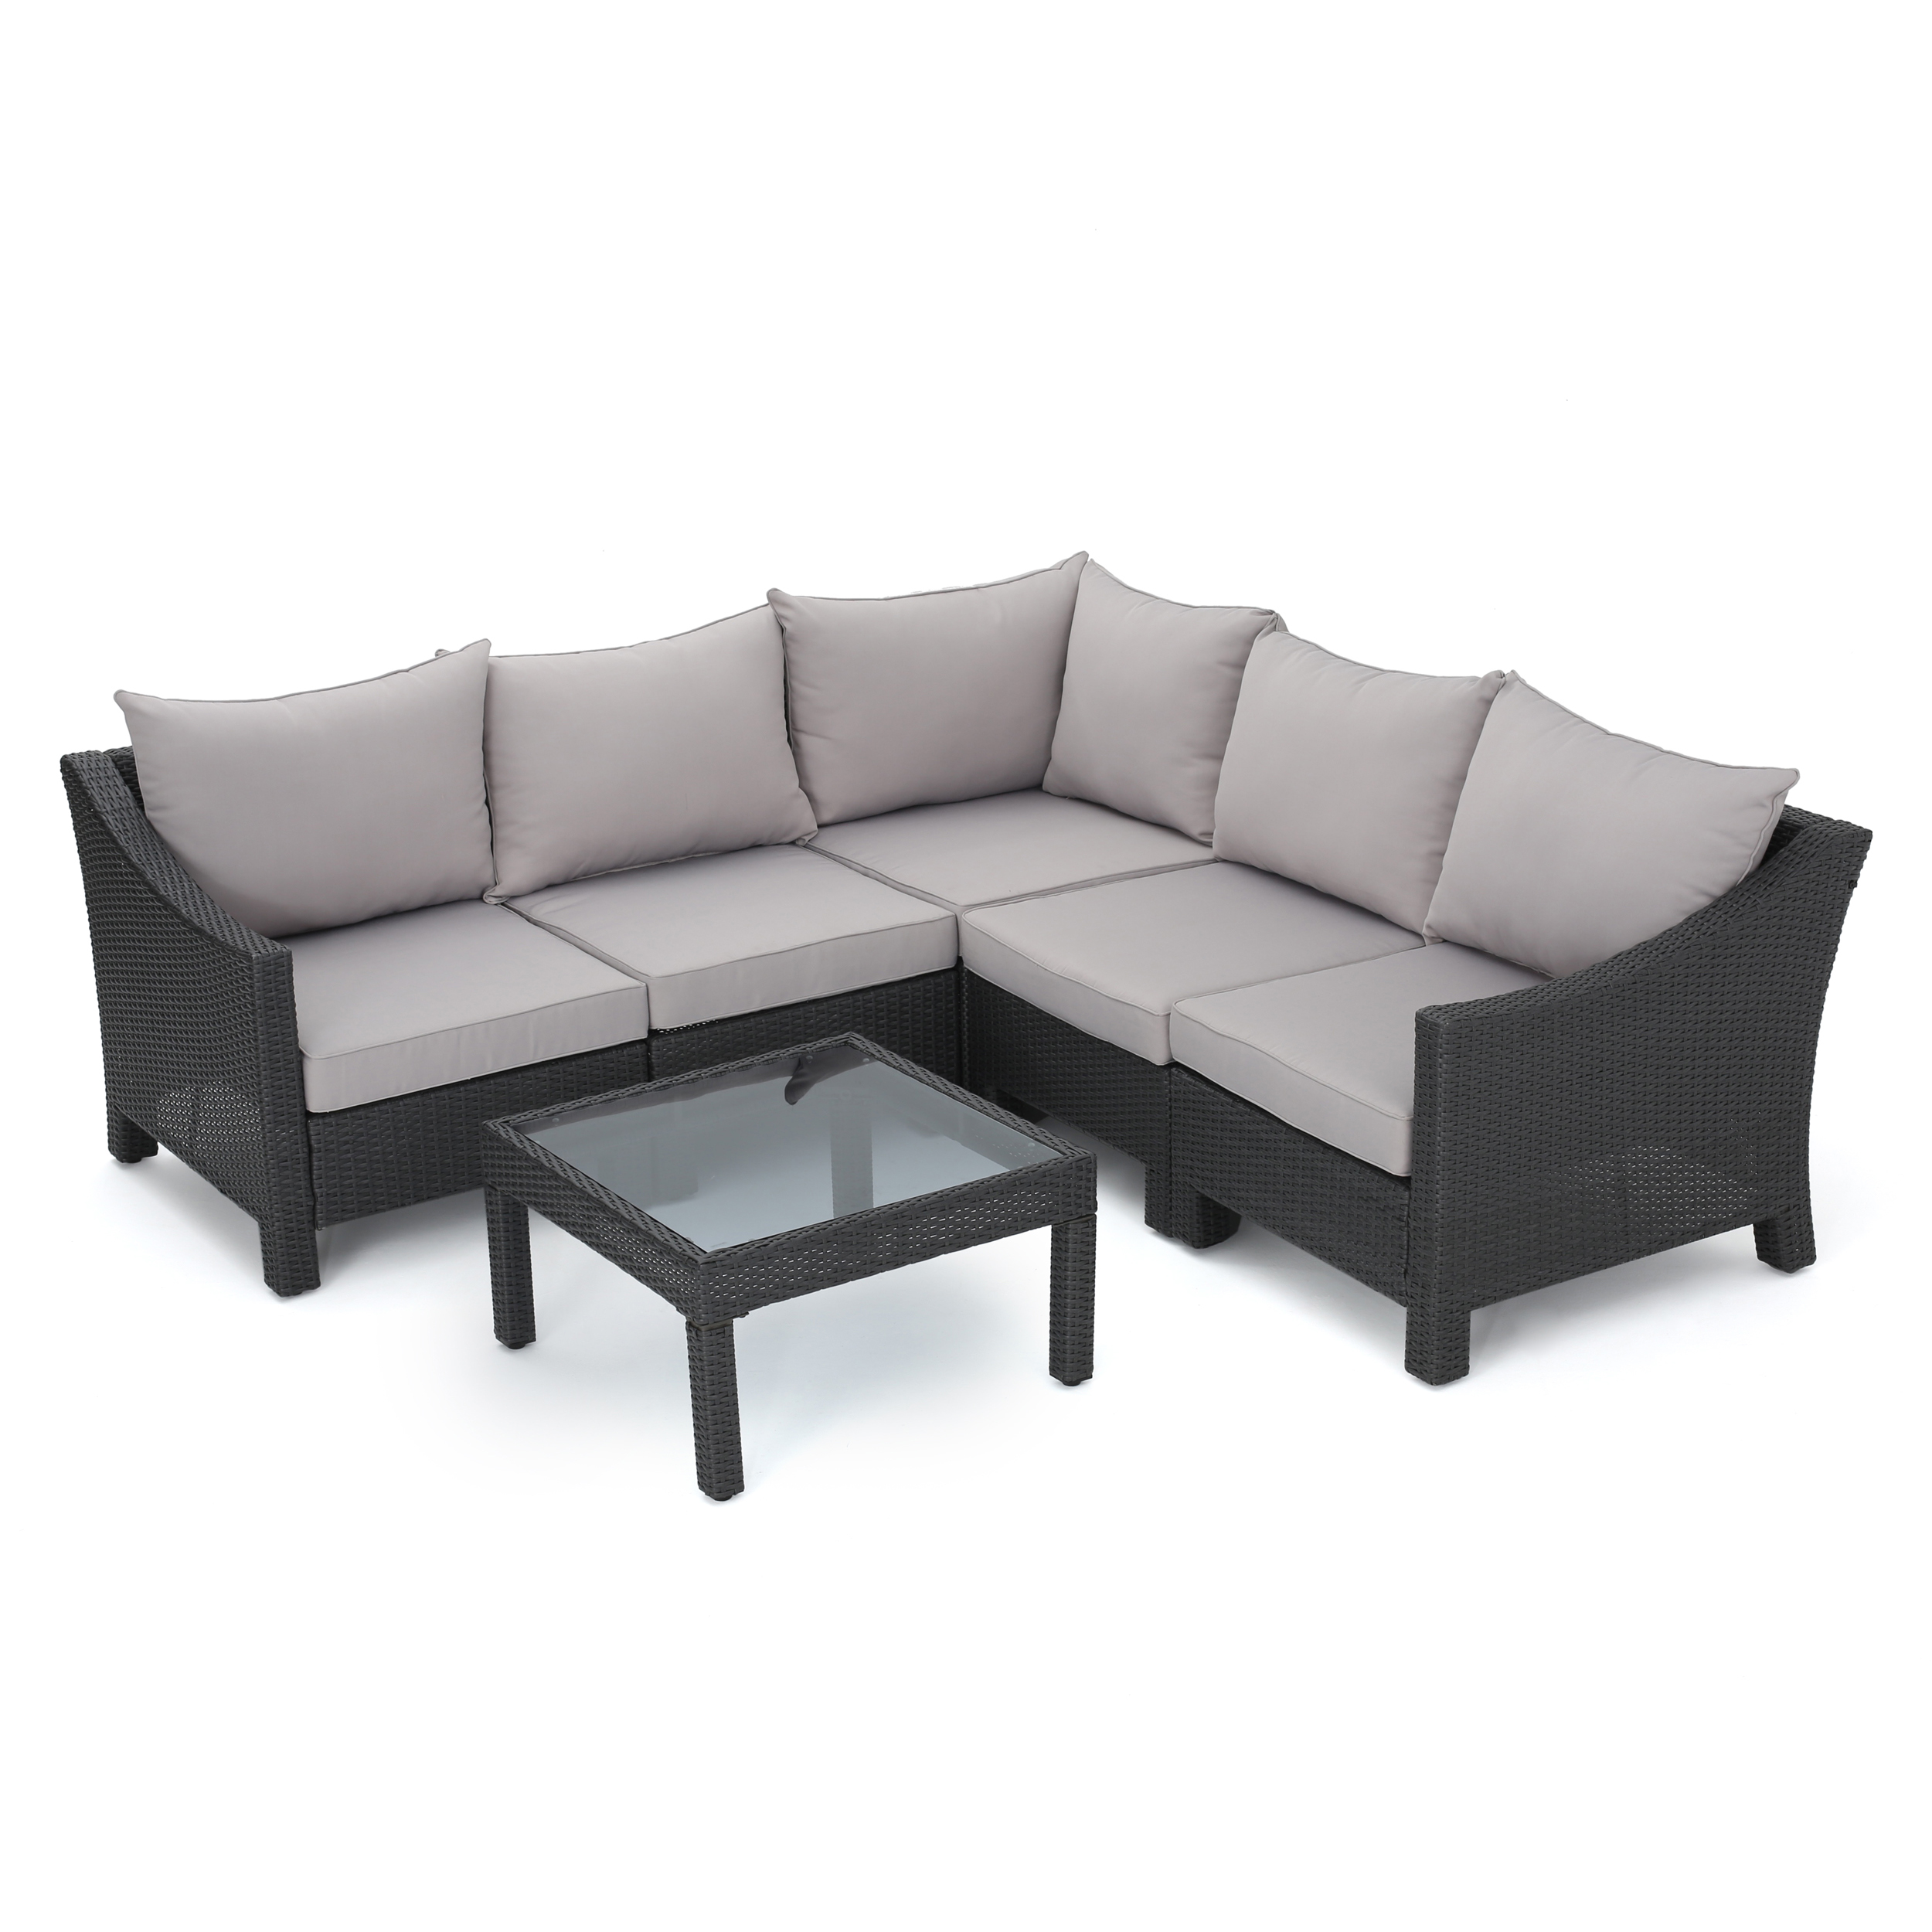 Caspian 6 Piece Outdoor Wicker Sectional Sofa Set With Water Resistant  Cushions, Grey And Silver